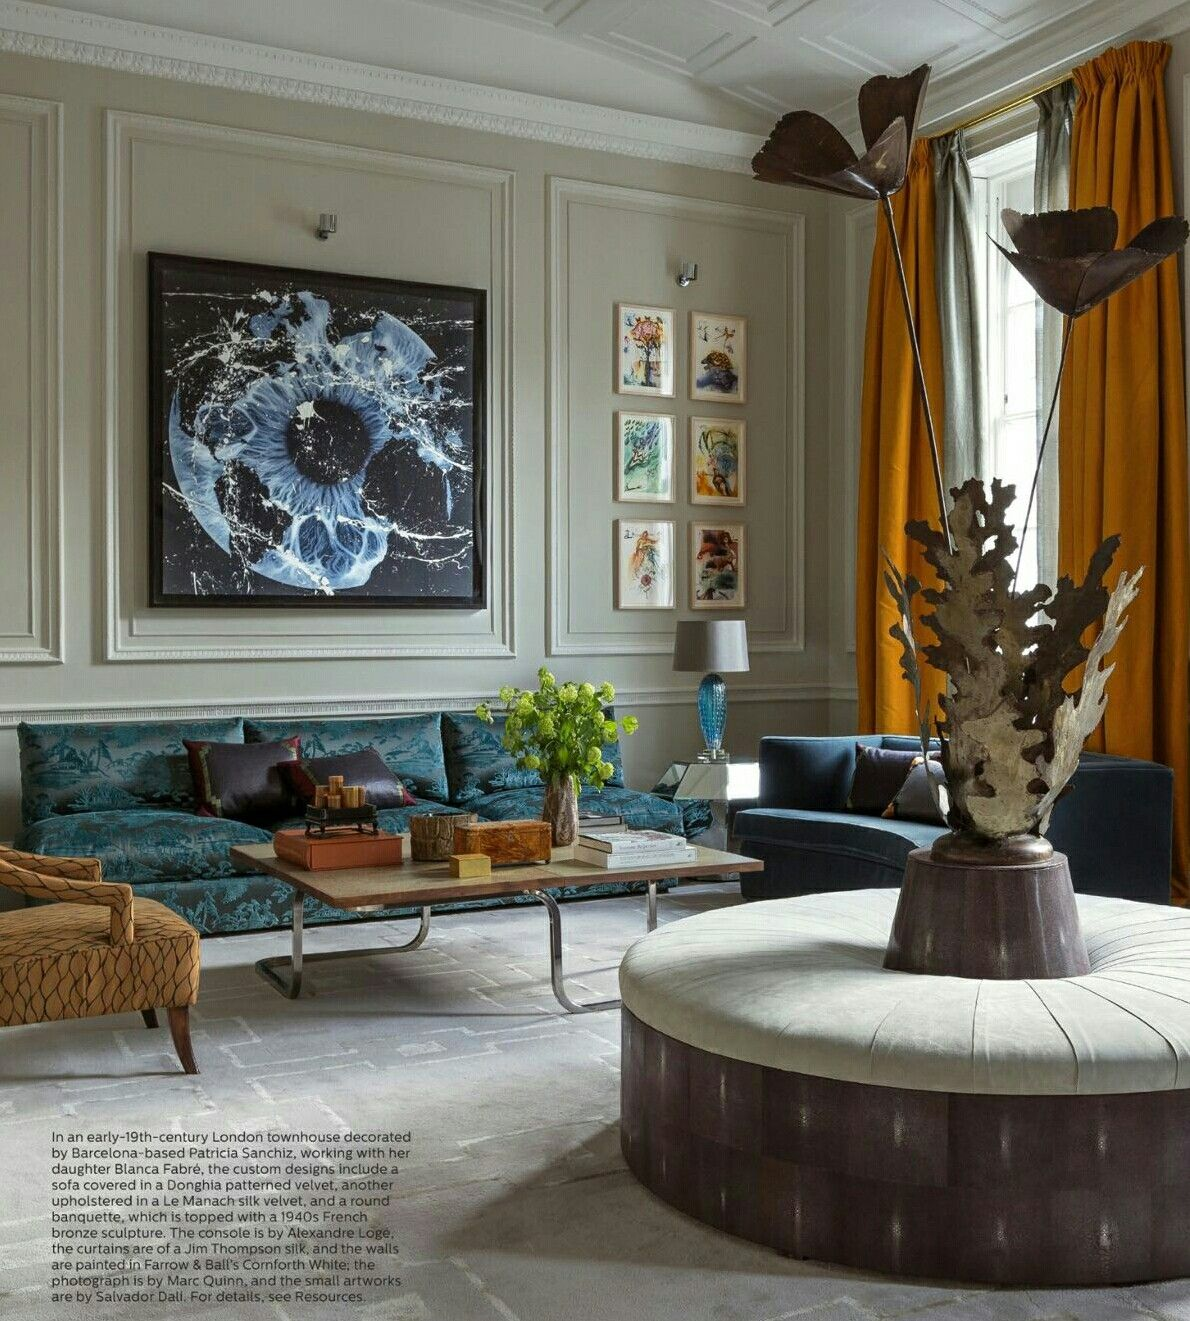 elle decor interior design by patricia sanchiz blanca fabre ...